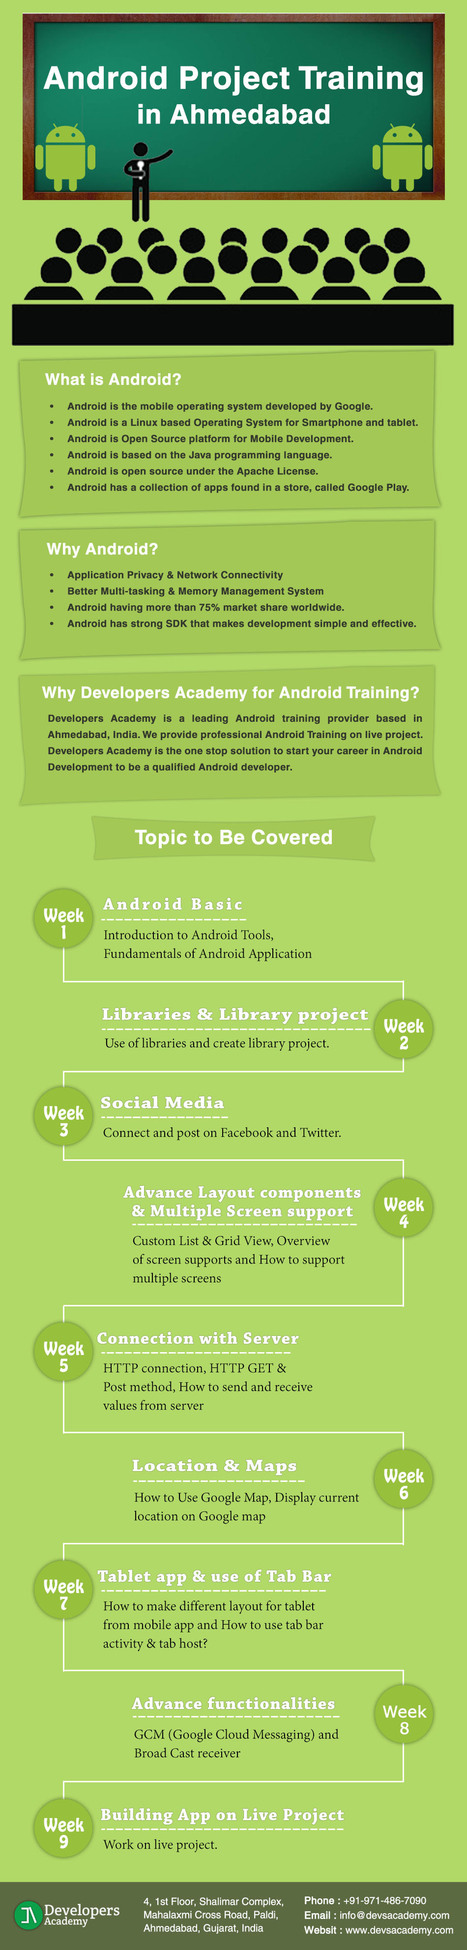 Android Project Training in Ahmedabad | iPhone - Android Traning | Scoop.it